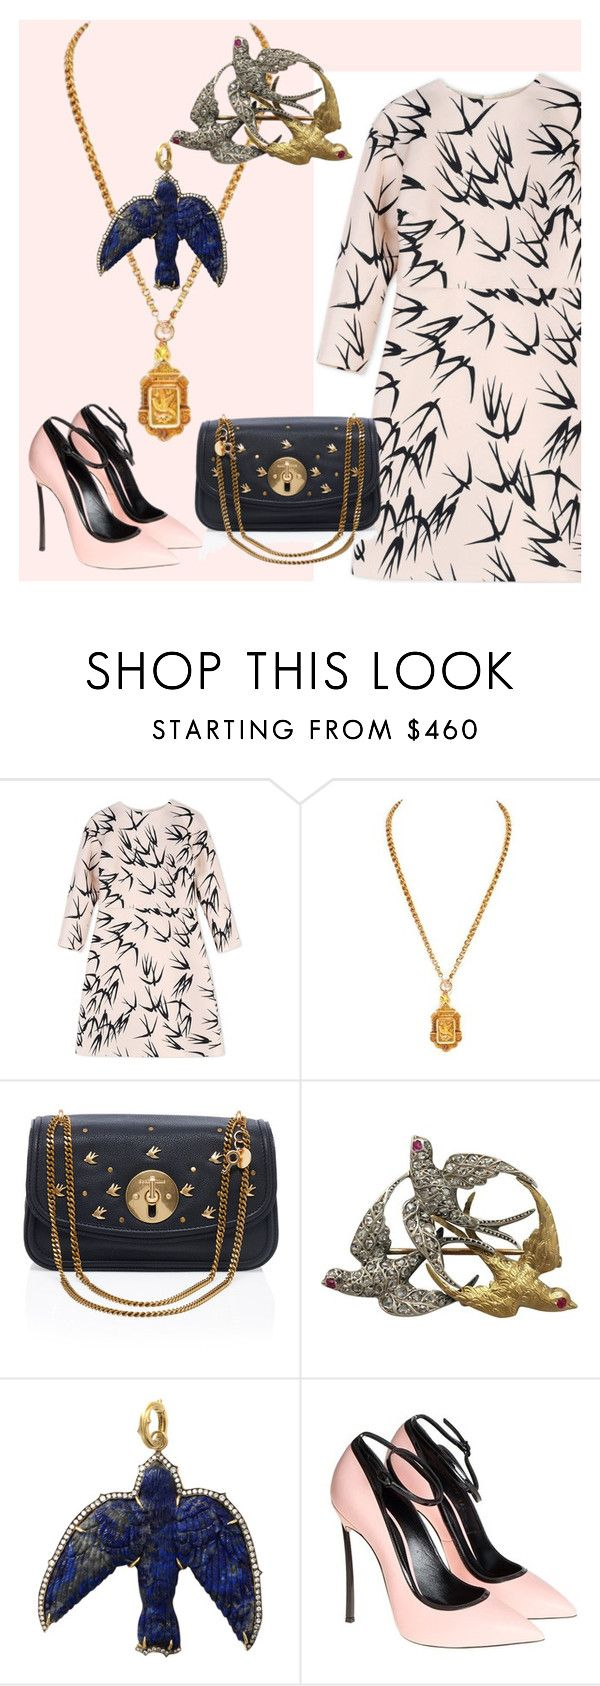 """When the Swallows Return to Capistrano"" by engleann ❤ liked on Polyvore featuring Rochas, See by Chloé, Sylva & Cie and Casadei"